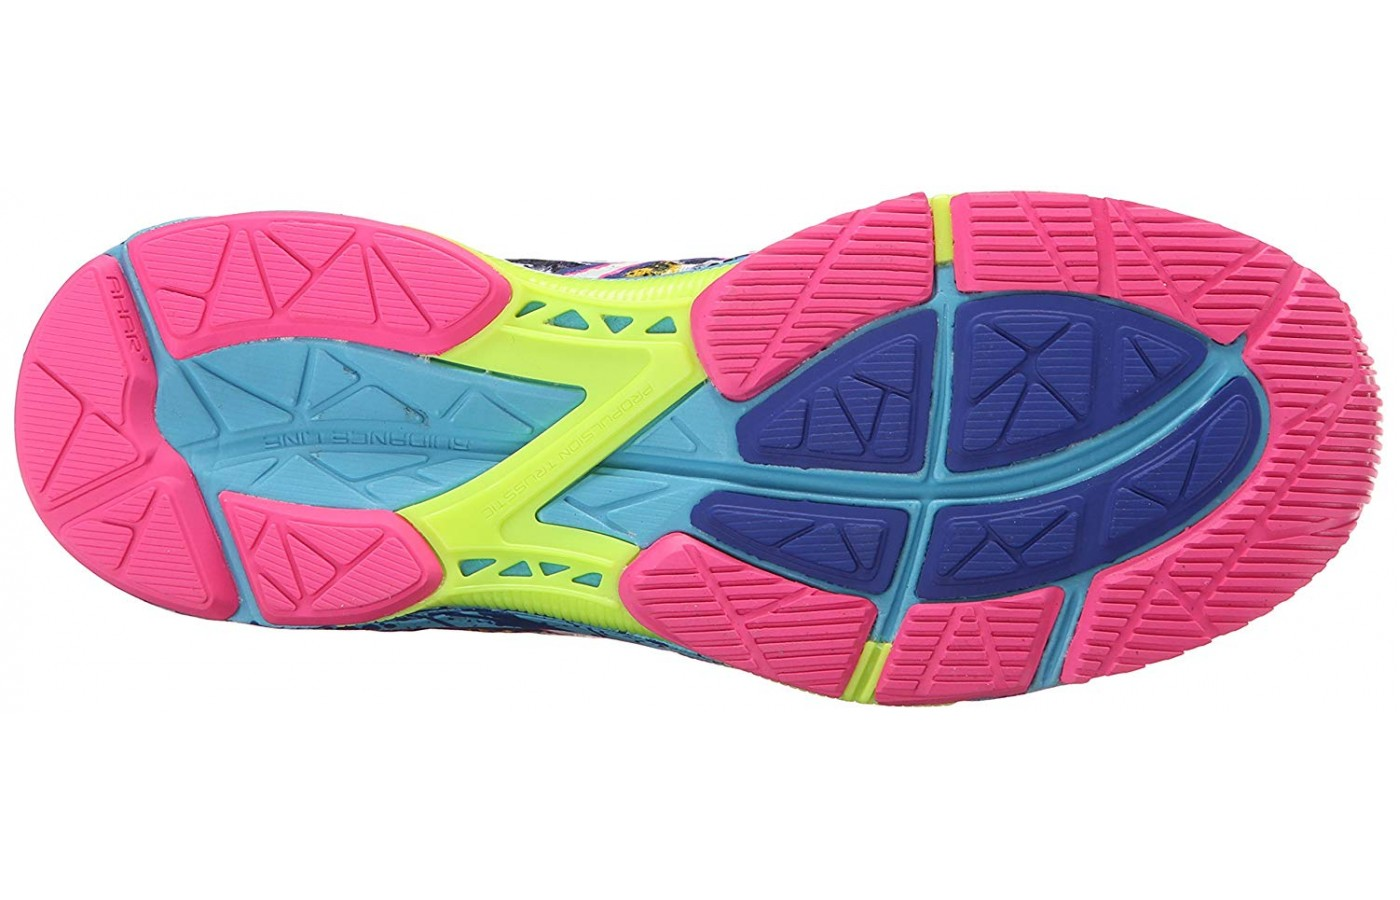 The outsole is made of AHAR (Asics High Abrasion Rubber).